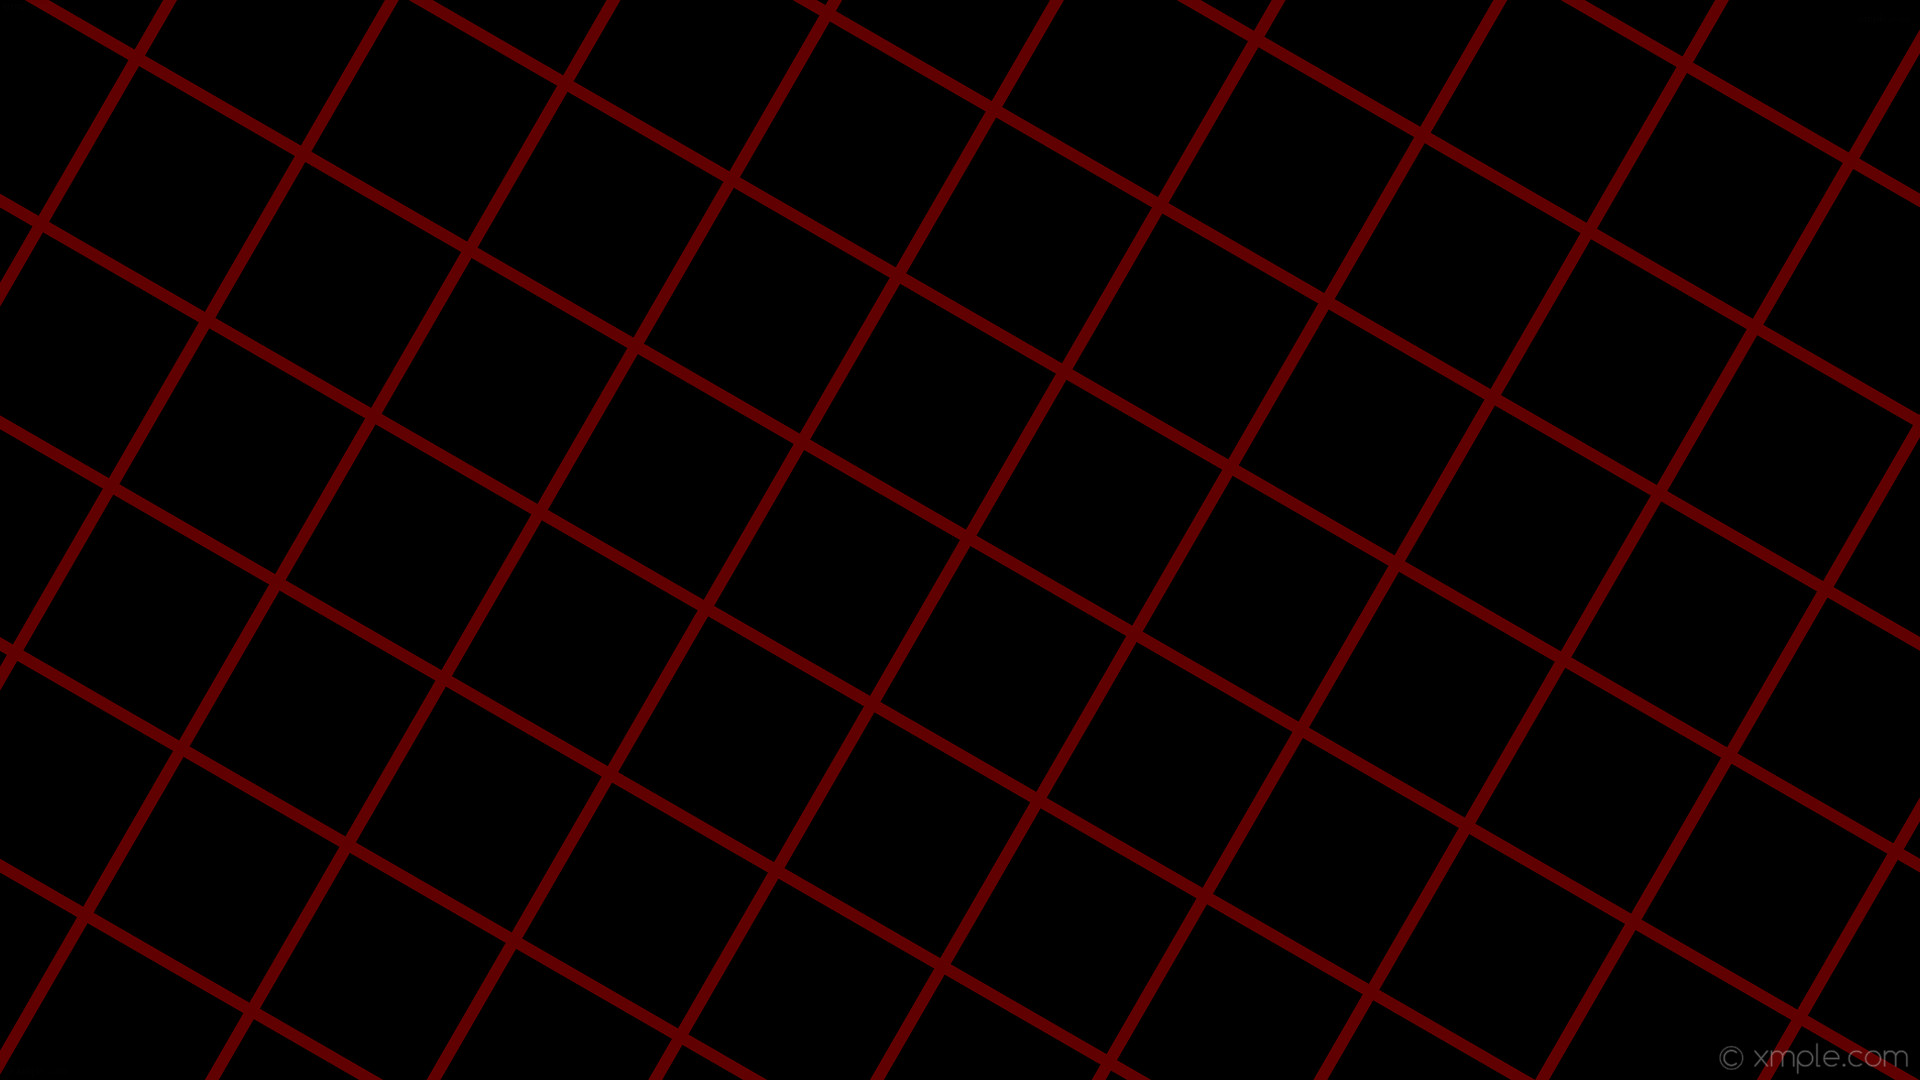 wallpaper graph paper red black grid dark red #000000 #8b0000 60° 12px 192px